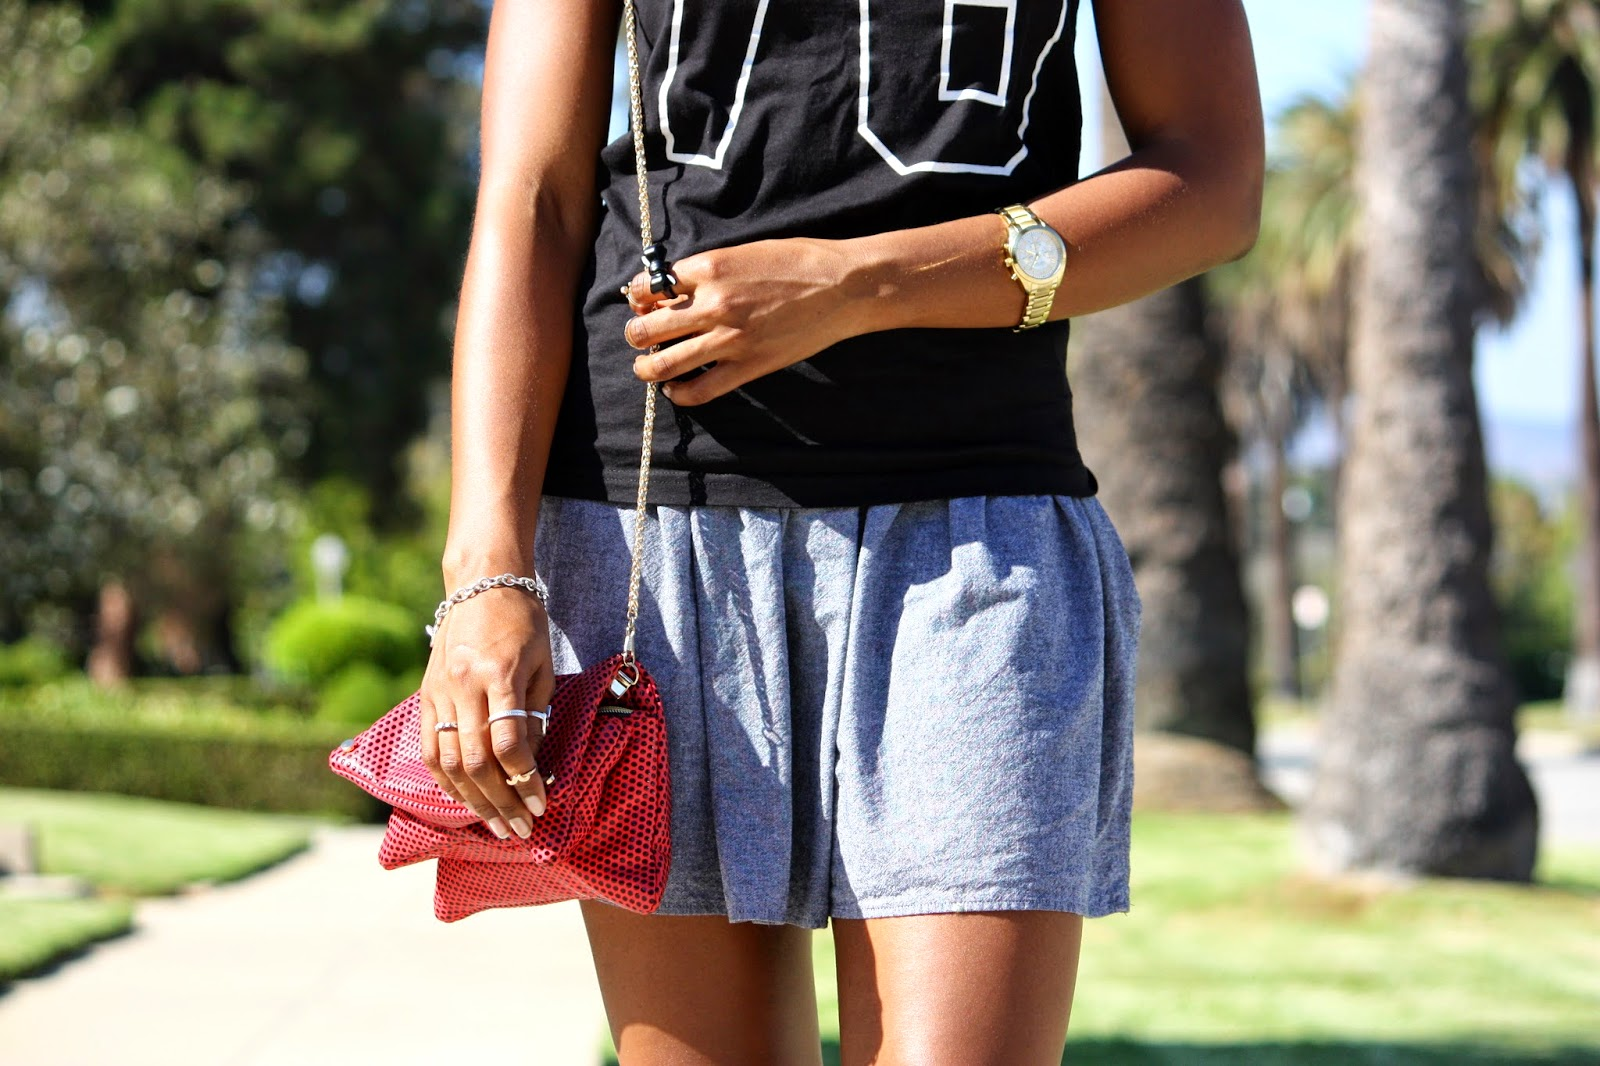 Wearing Caravelle NY watch HM crossbody bag and Tiffany Co bracelet